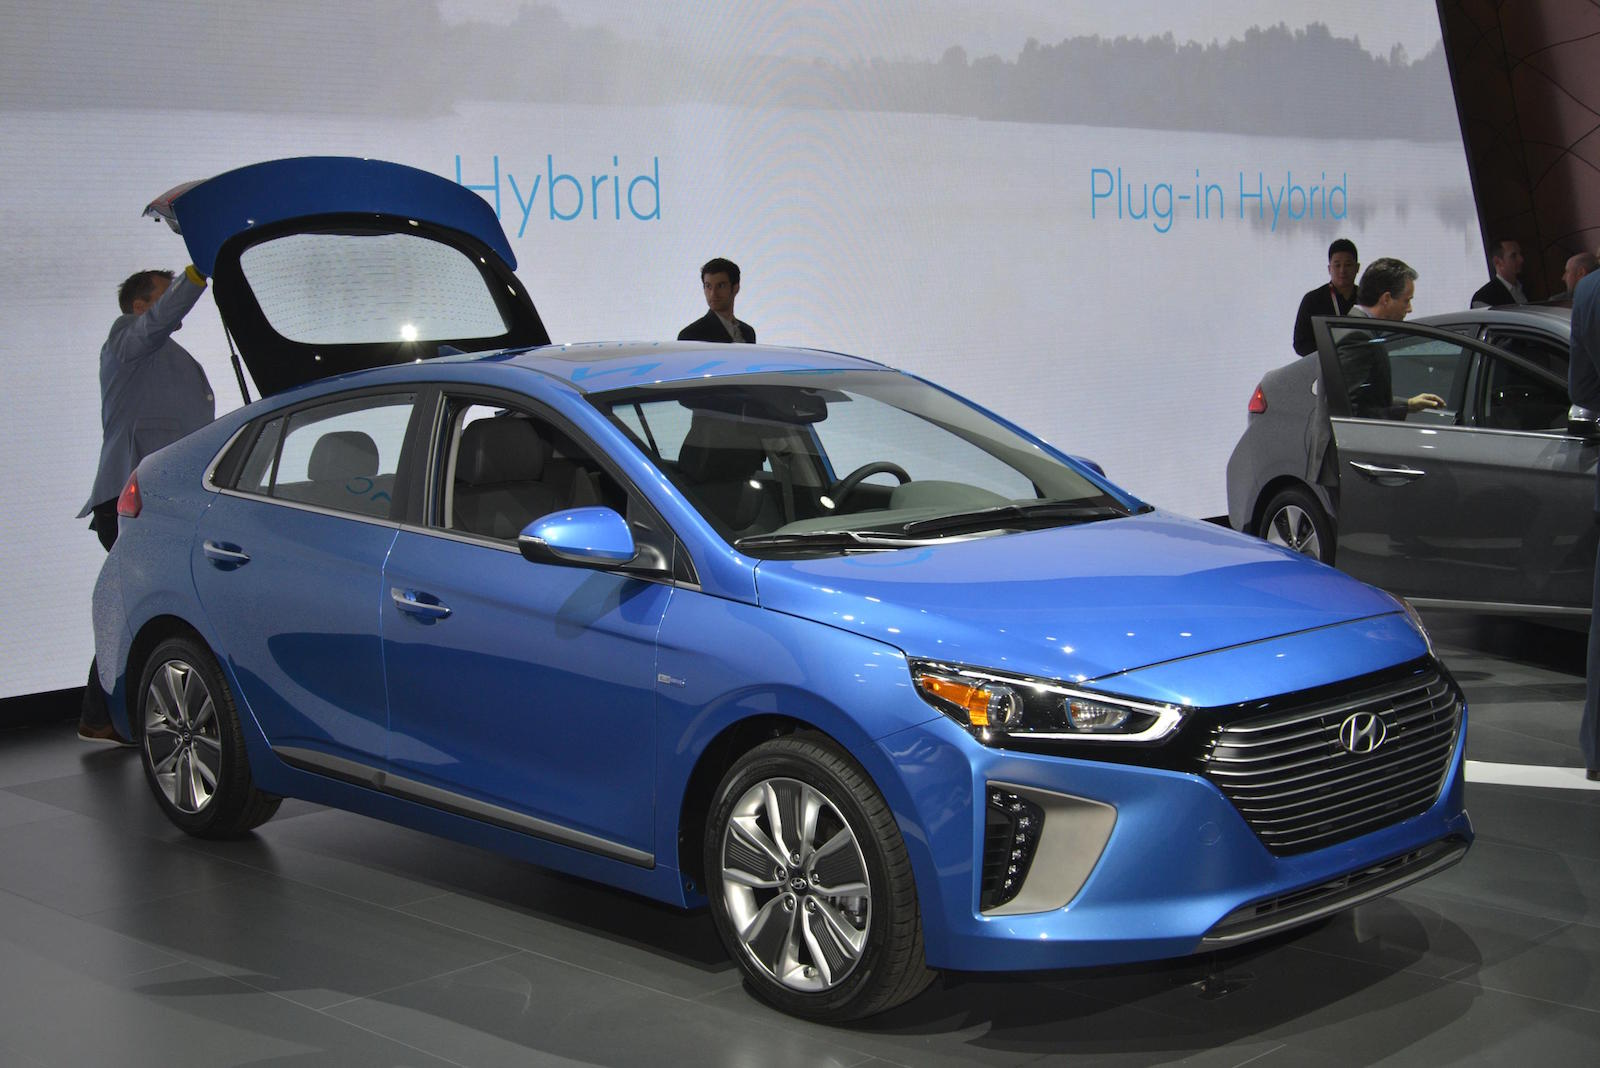 2017 Hyundai Ioniq Debuts In Ny 110 Mile Electric Range 25 Plus For Plug Live Photos